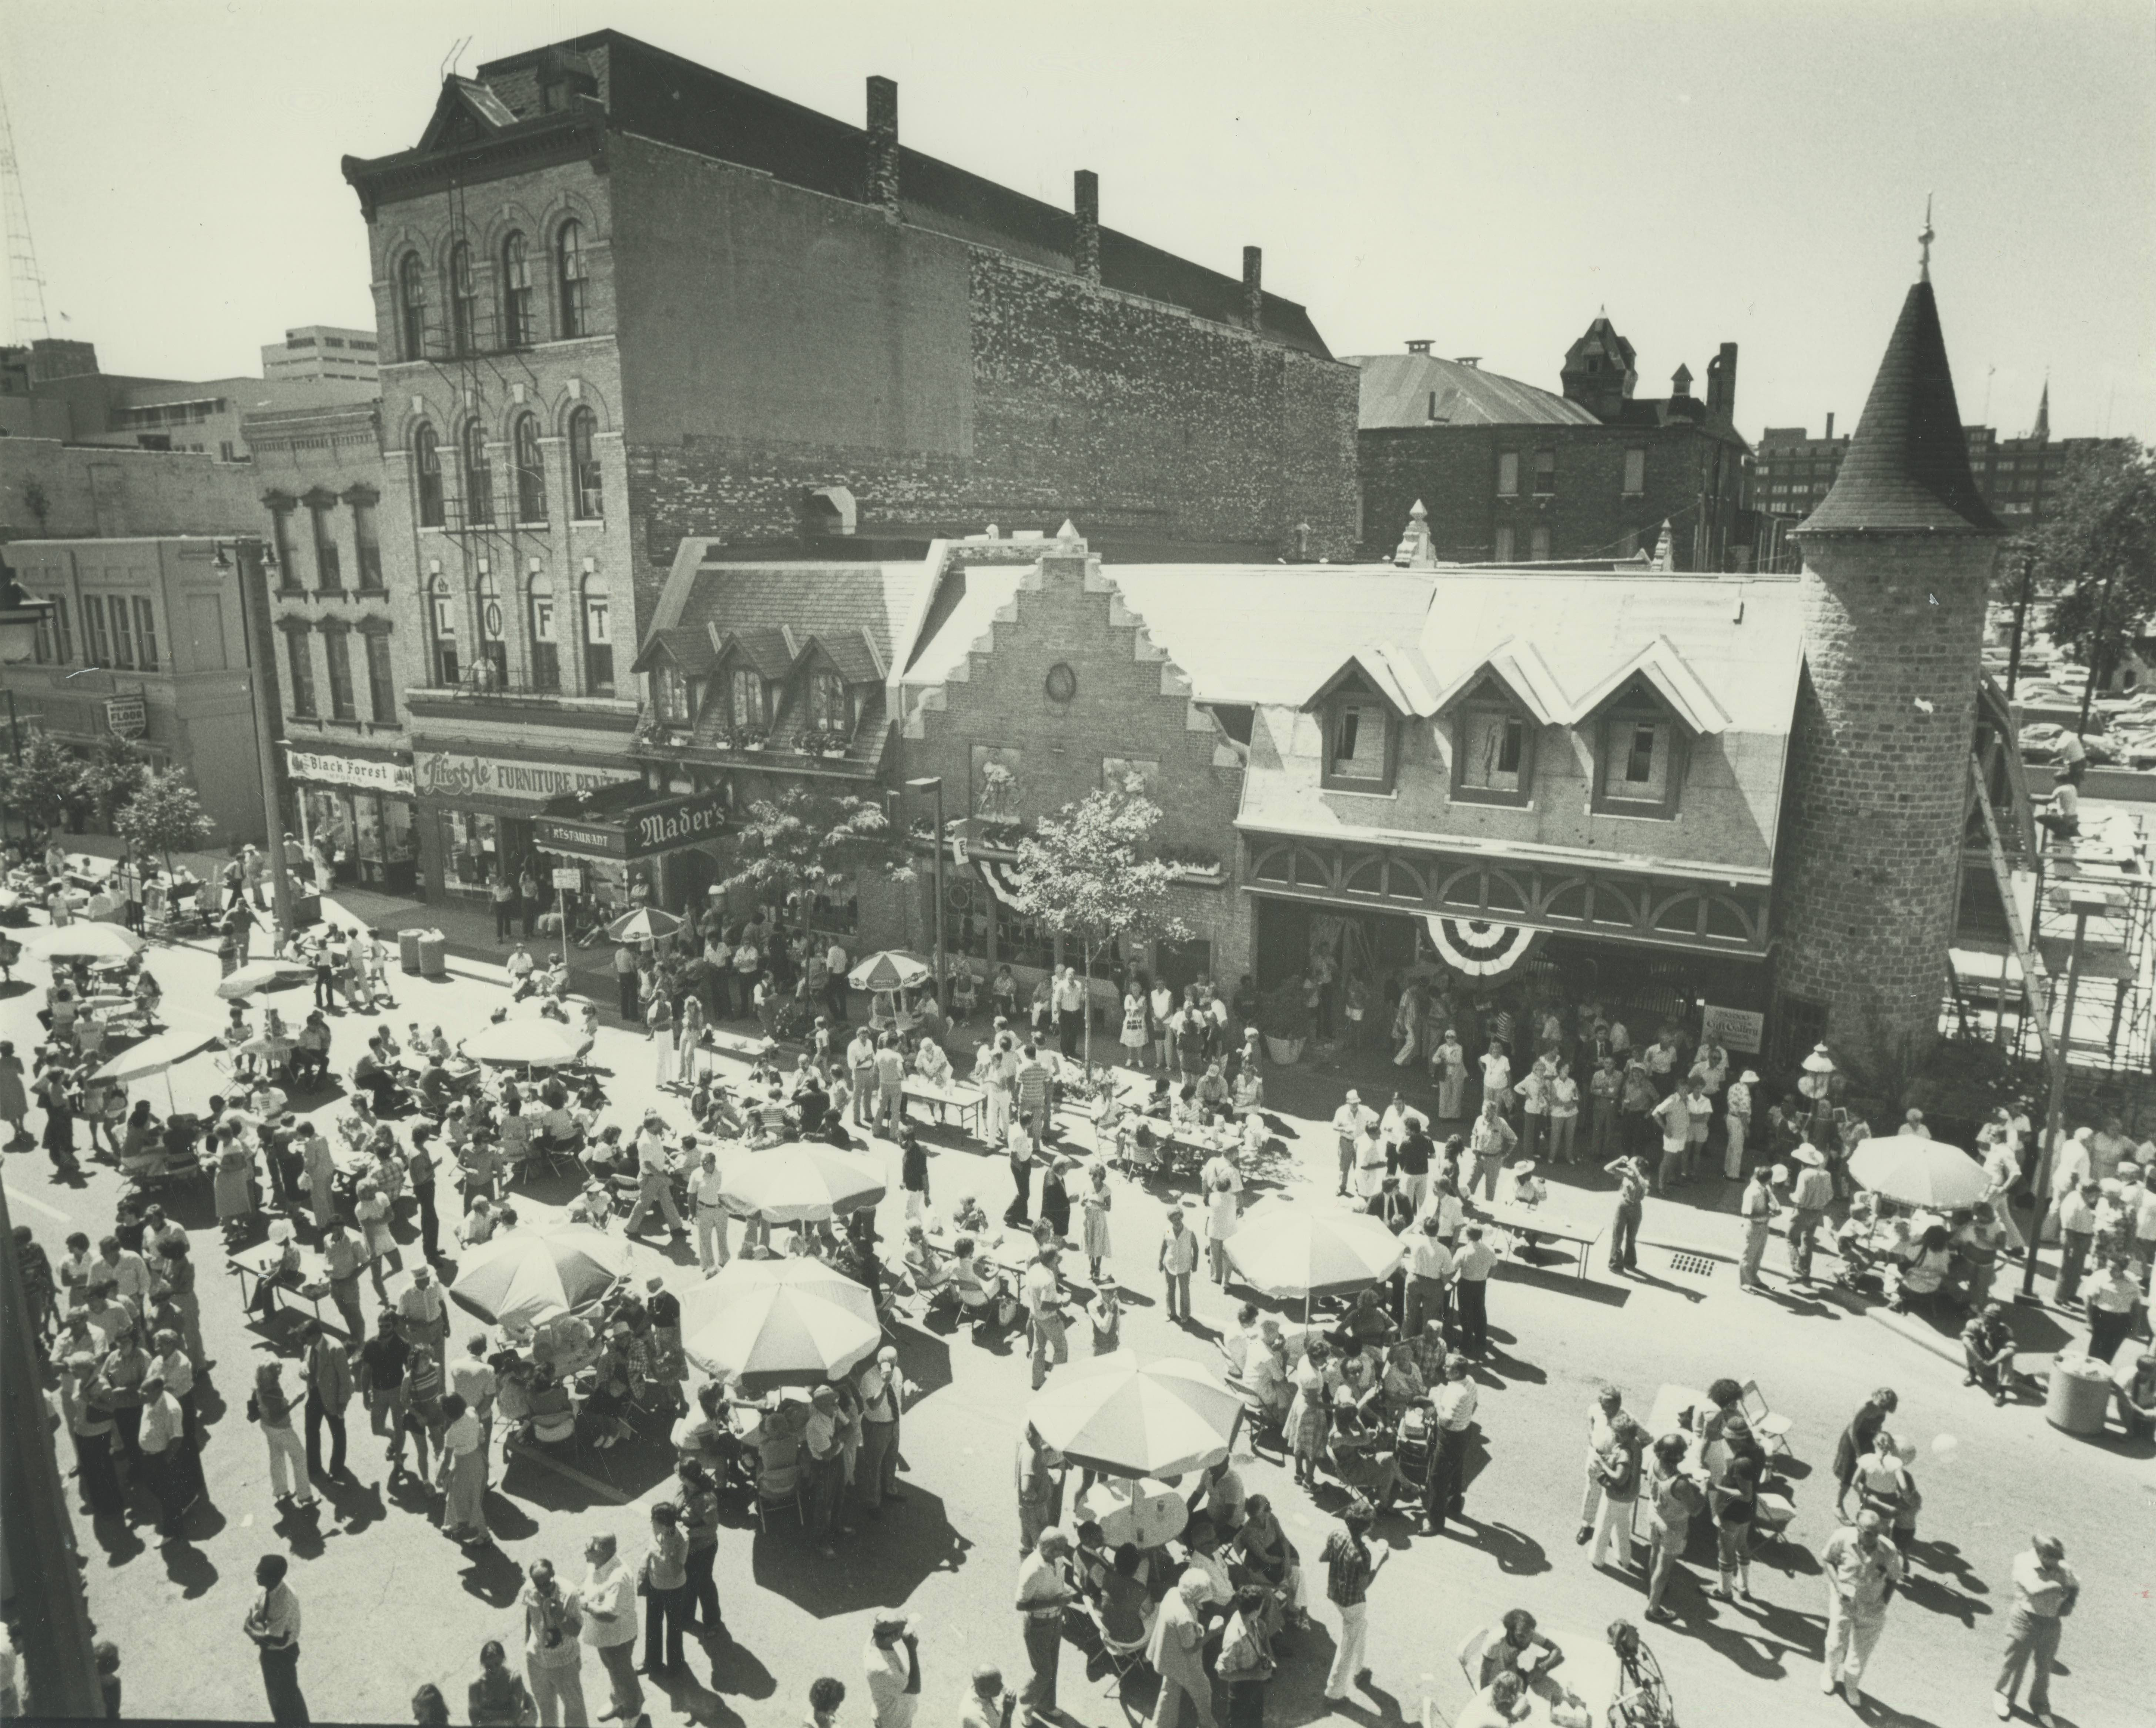 <table class=&quot;lightbox&quot;><tr><td colspan=2 class=&quot;lightbox-title&quot;>Usinger's Centennial Wurst Fest</td></tr><tr><td colspan=2 class=&quot;lightbox-caption&quot;>In August 1980, Usinger's Famous Sausage celebrated its 100th year of business with a block party. </td></tr><tr><td colspan=2 class=&quot;lightbox-spacer&quot;></td></tr><tr class=&quot;lightbox-detail&quot;><td class=&quot;cell-title&quot;>Source: </td><td class=&quot;cell-value&quot;>From the Historic Photo Collection of the Milwaukee Public Library. Reprinted with permission.<br /><a href=&quot;http://content.mpl.org/cdm/singleitem/collection/HstoricPho/id/5653/rec/1&quot; target=&quot;_blank&quot;>Milwaukee Public Library</a></td></tr><tr class=&quot;filler-row&quot;><td colspan=2>&nbsp;</td></tr></table>